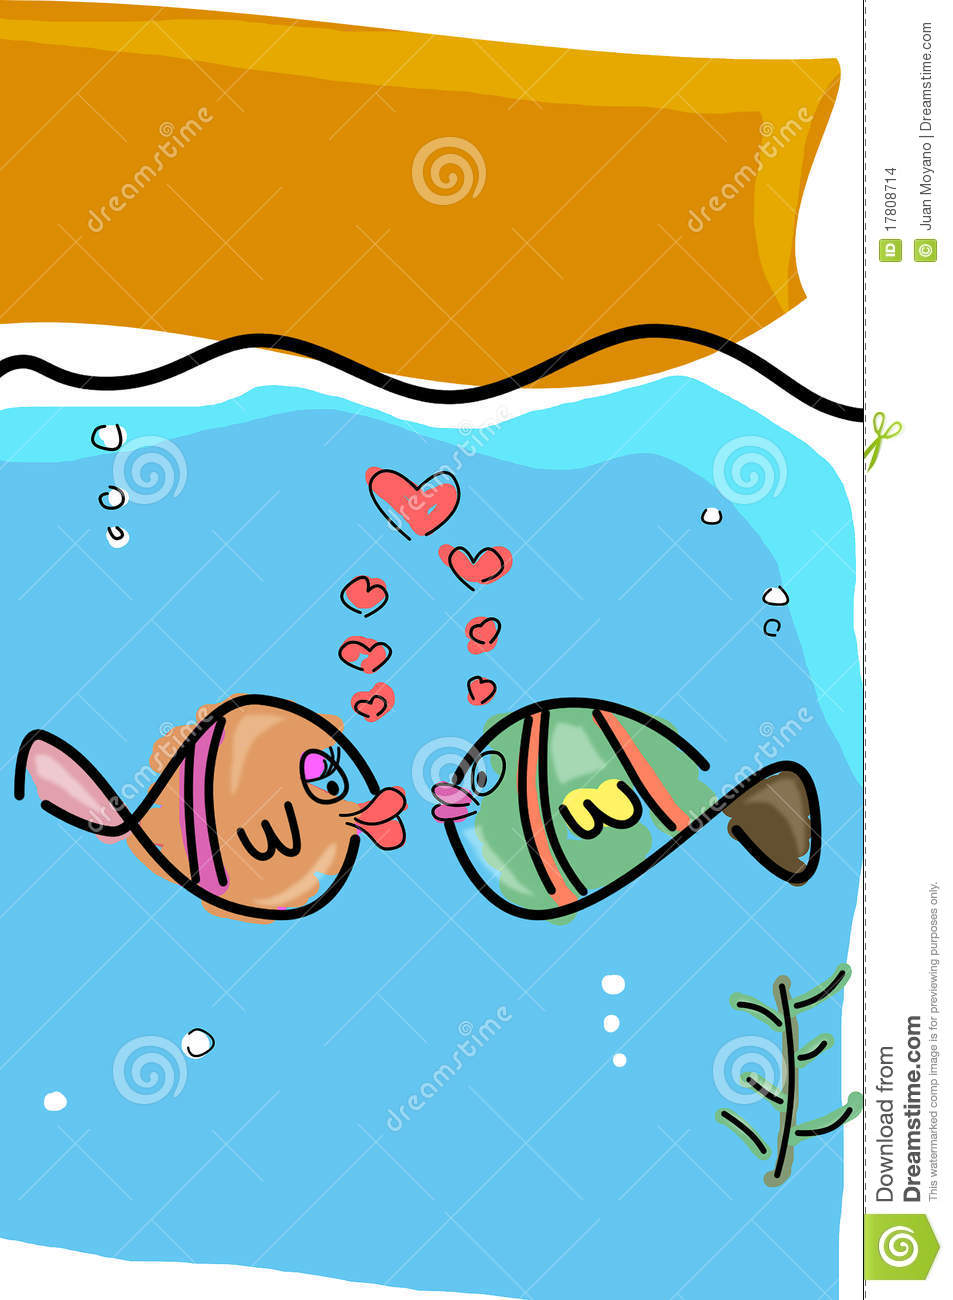 Fishes in love stock images image 17808714 for I love the fishes